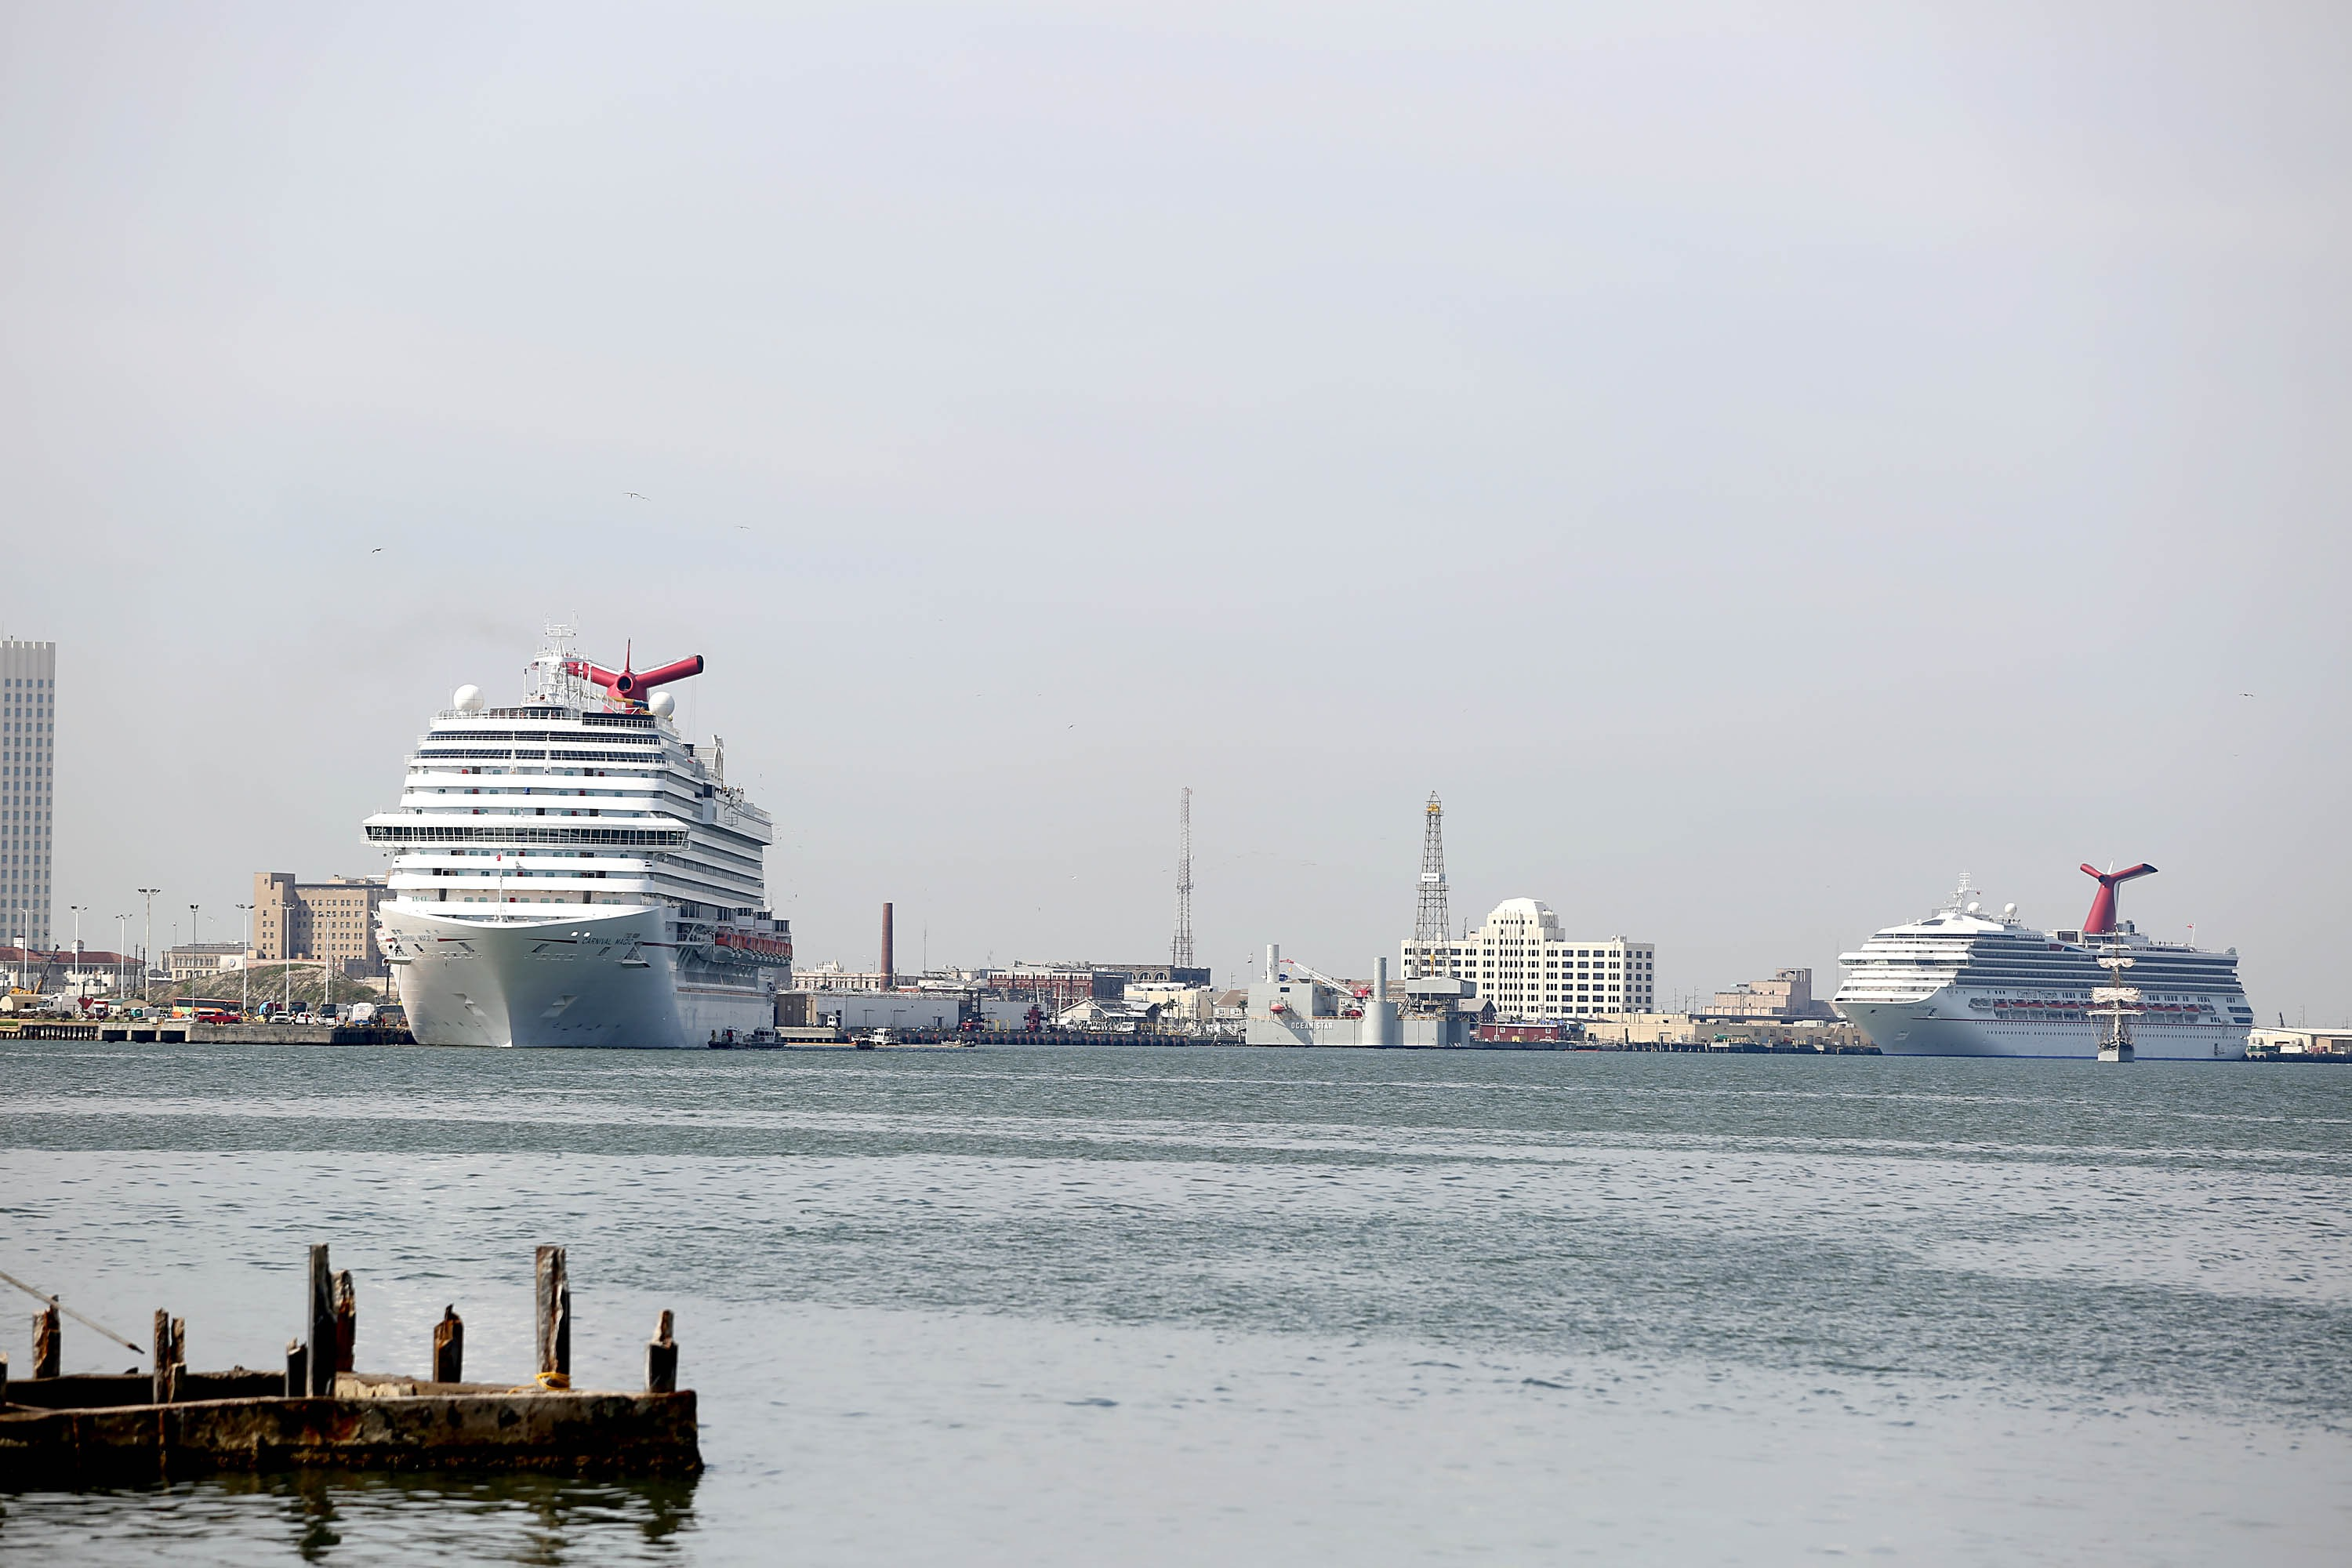 The Carnival Cruise Ship  Triumph  along with two other cruise ships sit in the Houston Port on March 25, 2014 in Galveston, Texas.